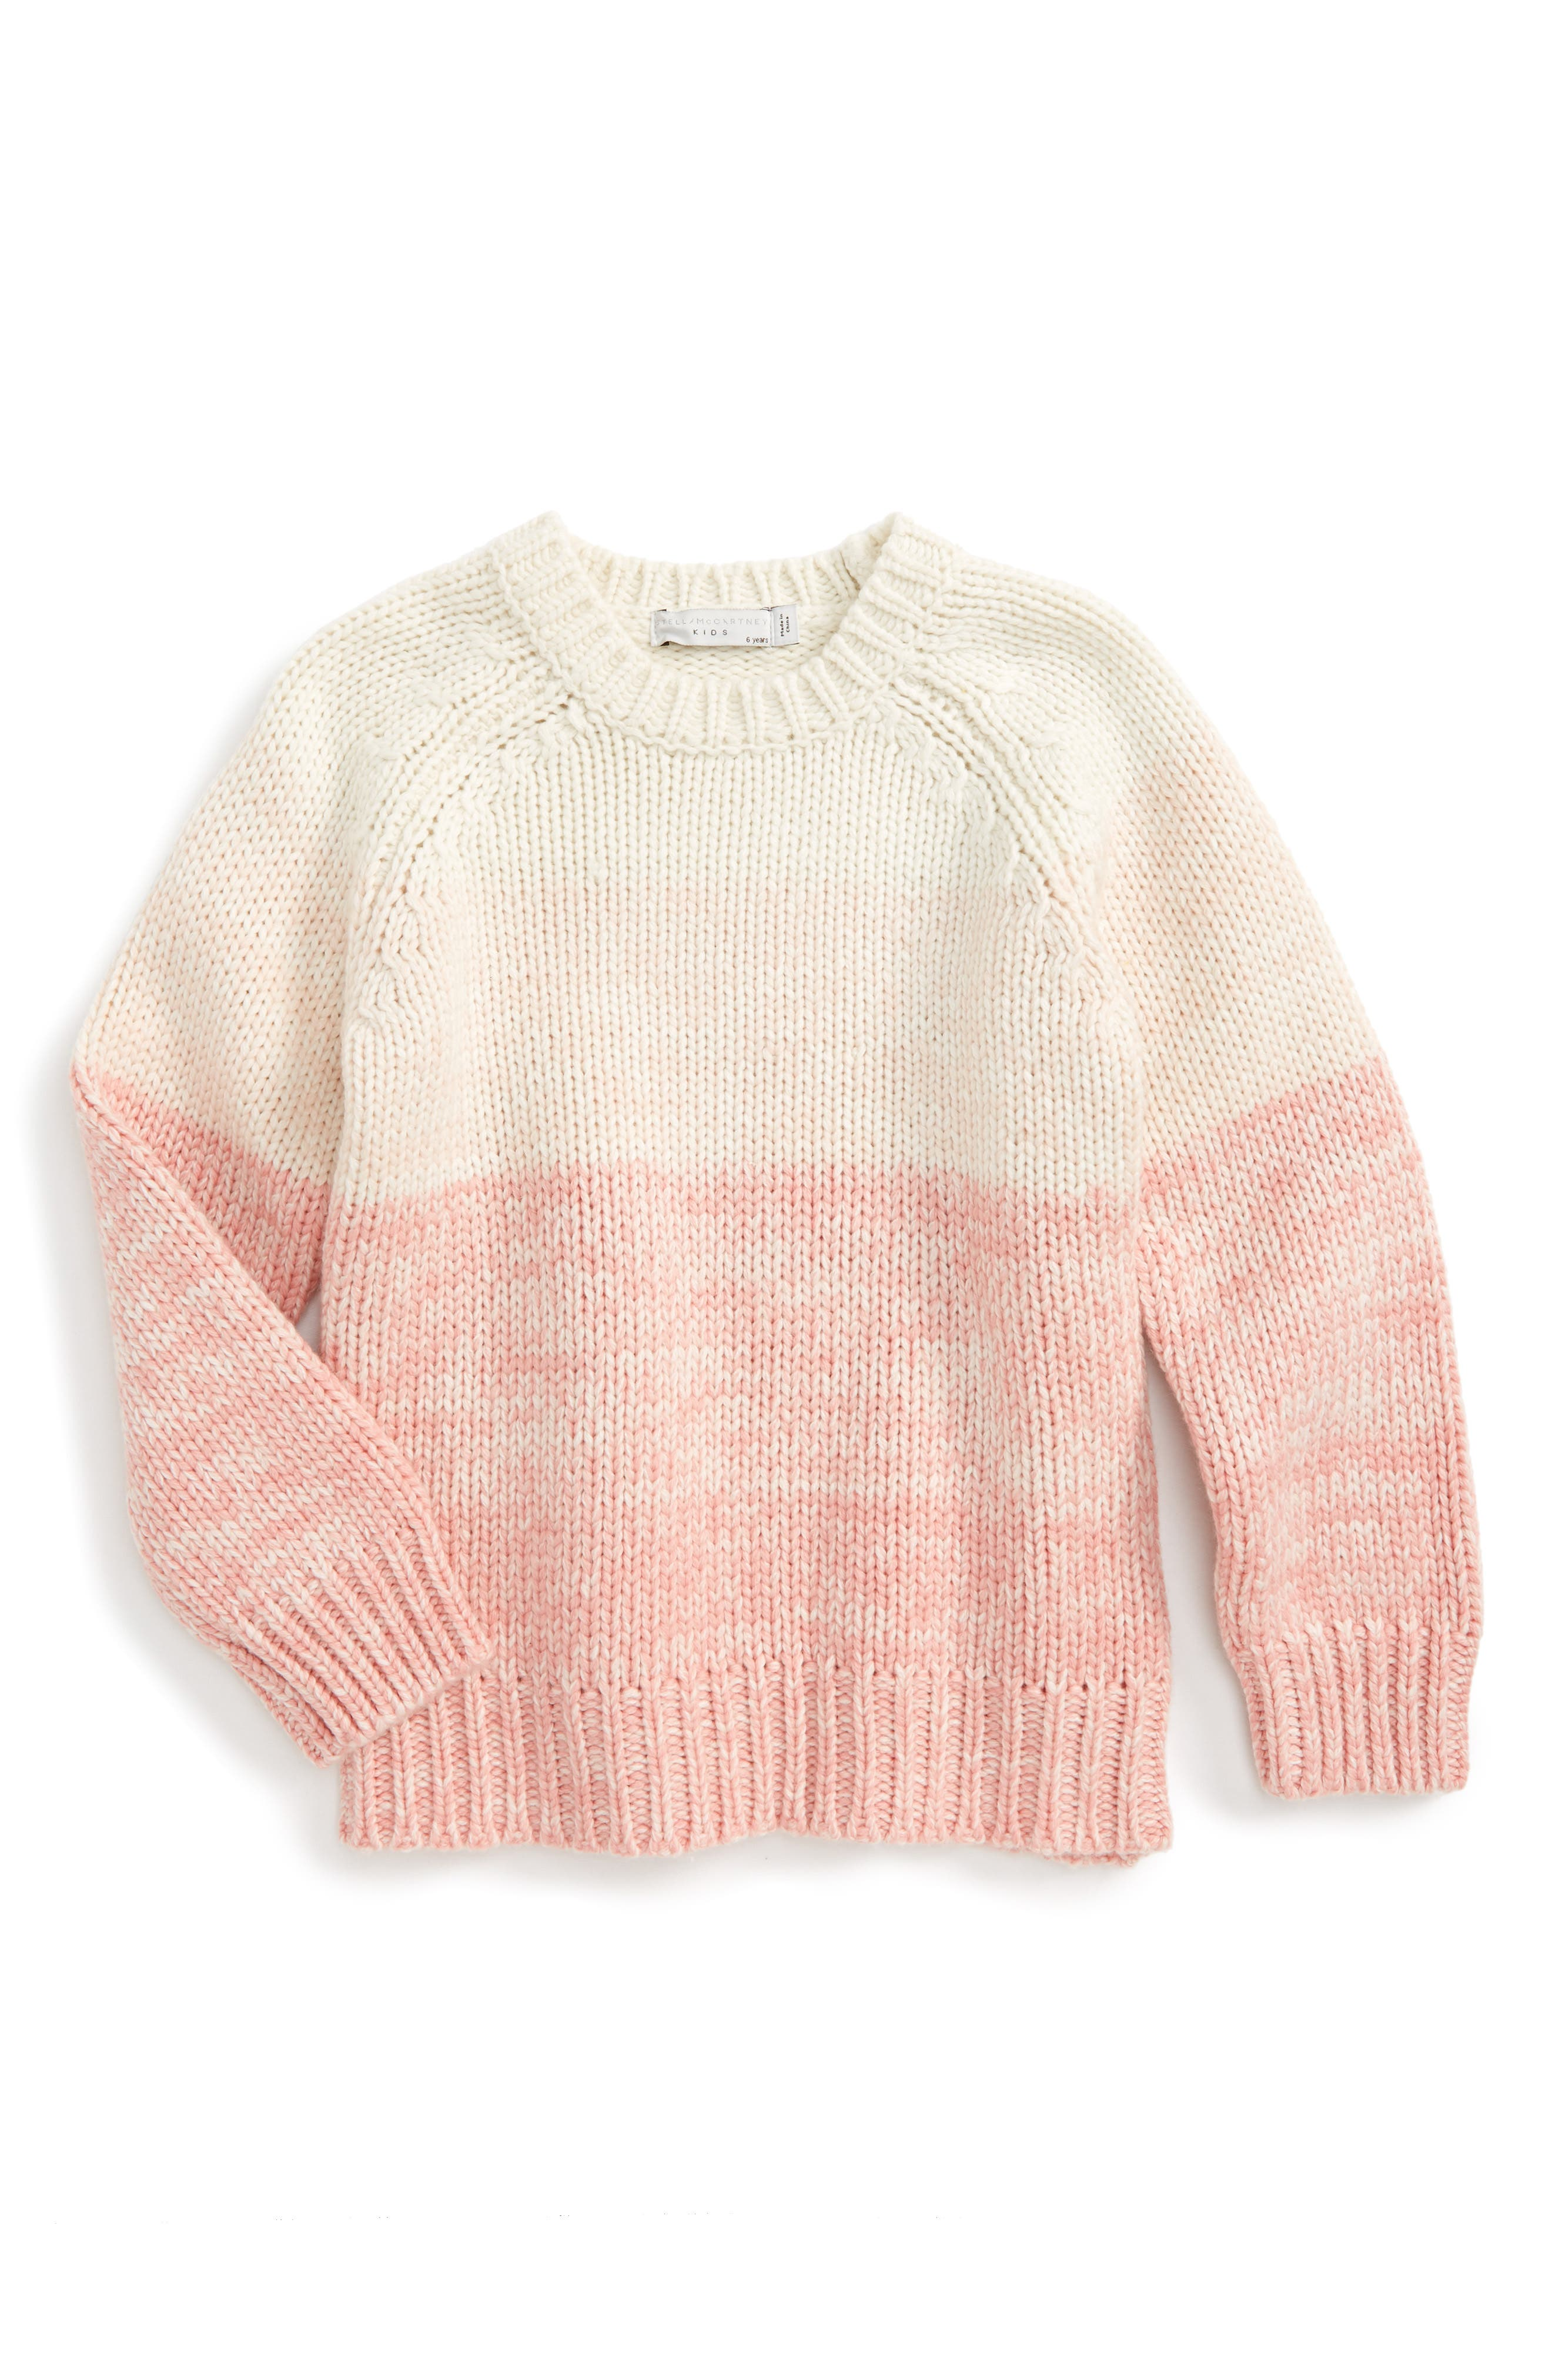 Kids Freddie Chunky Knit Sweater,                         Main,                         color, Pink